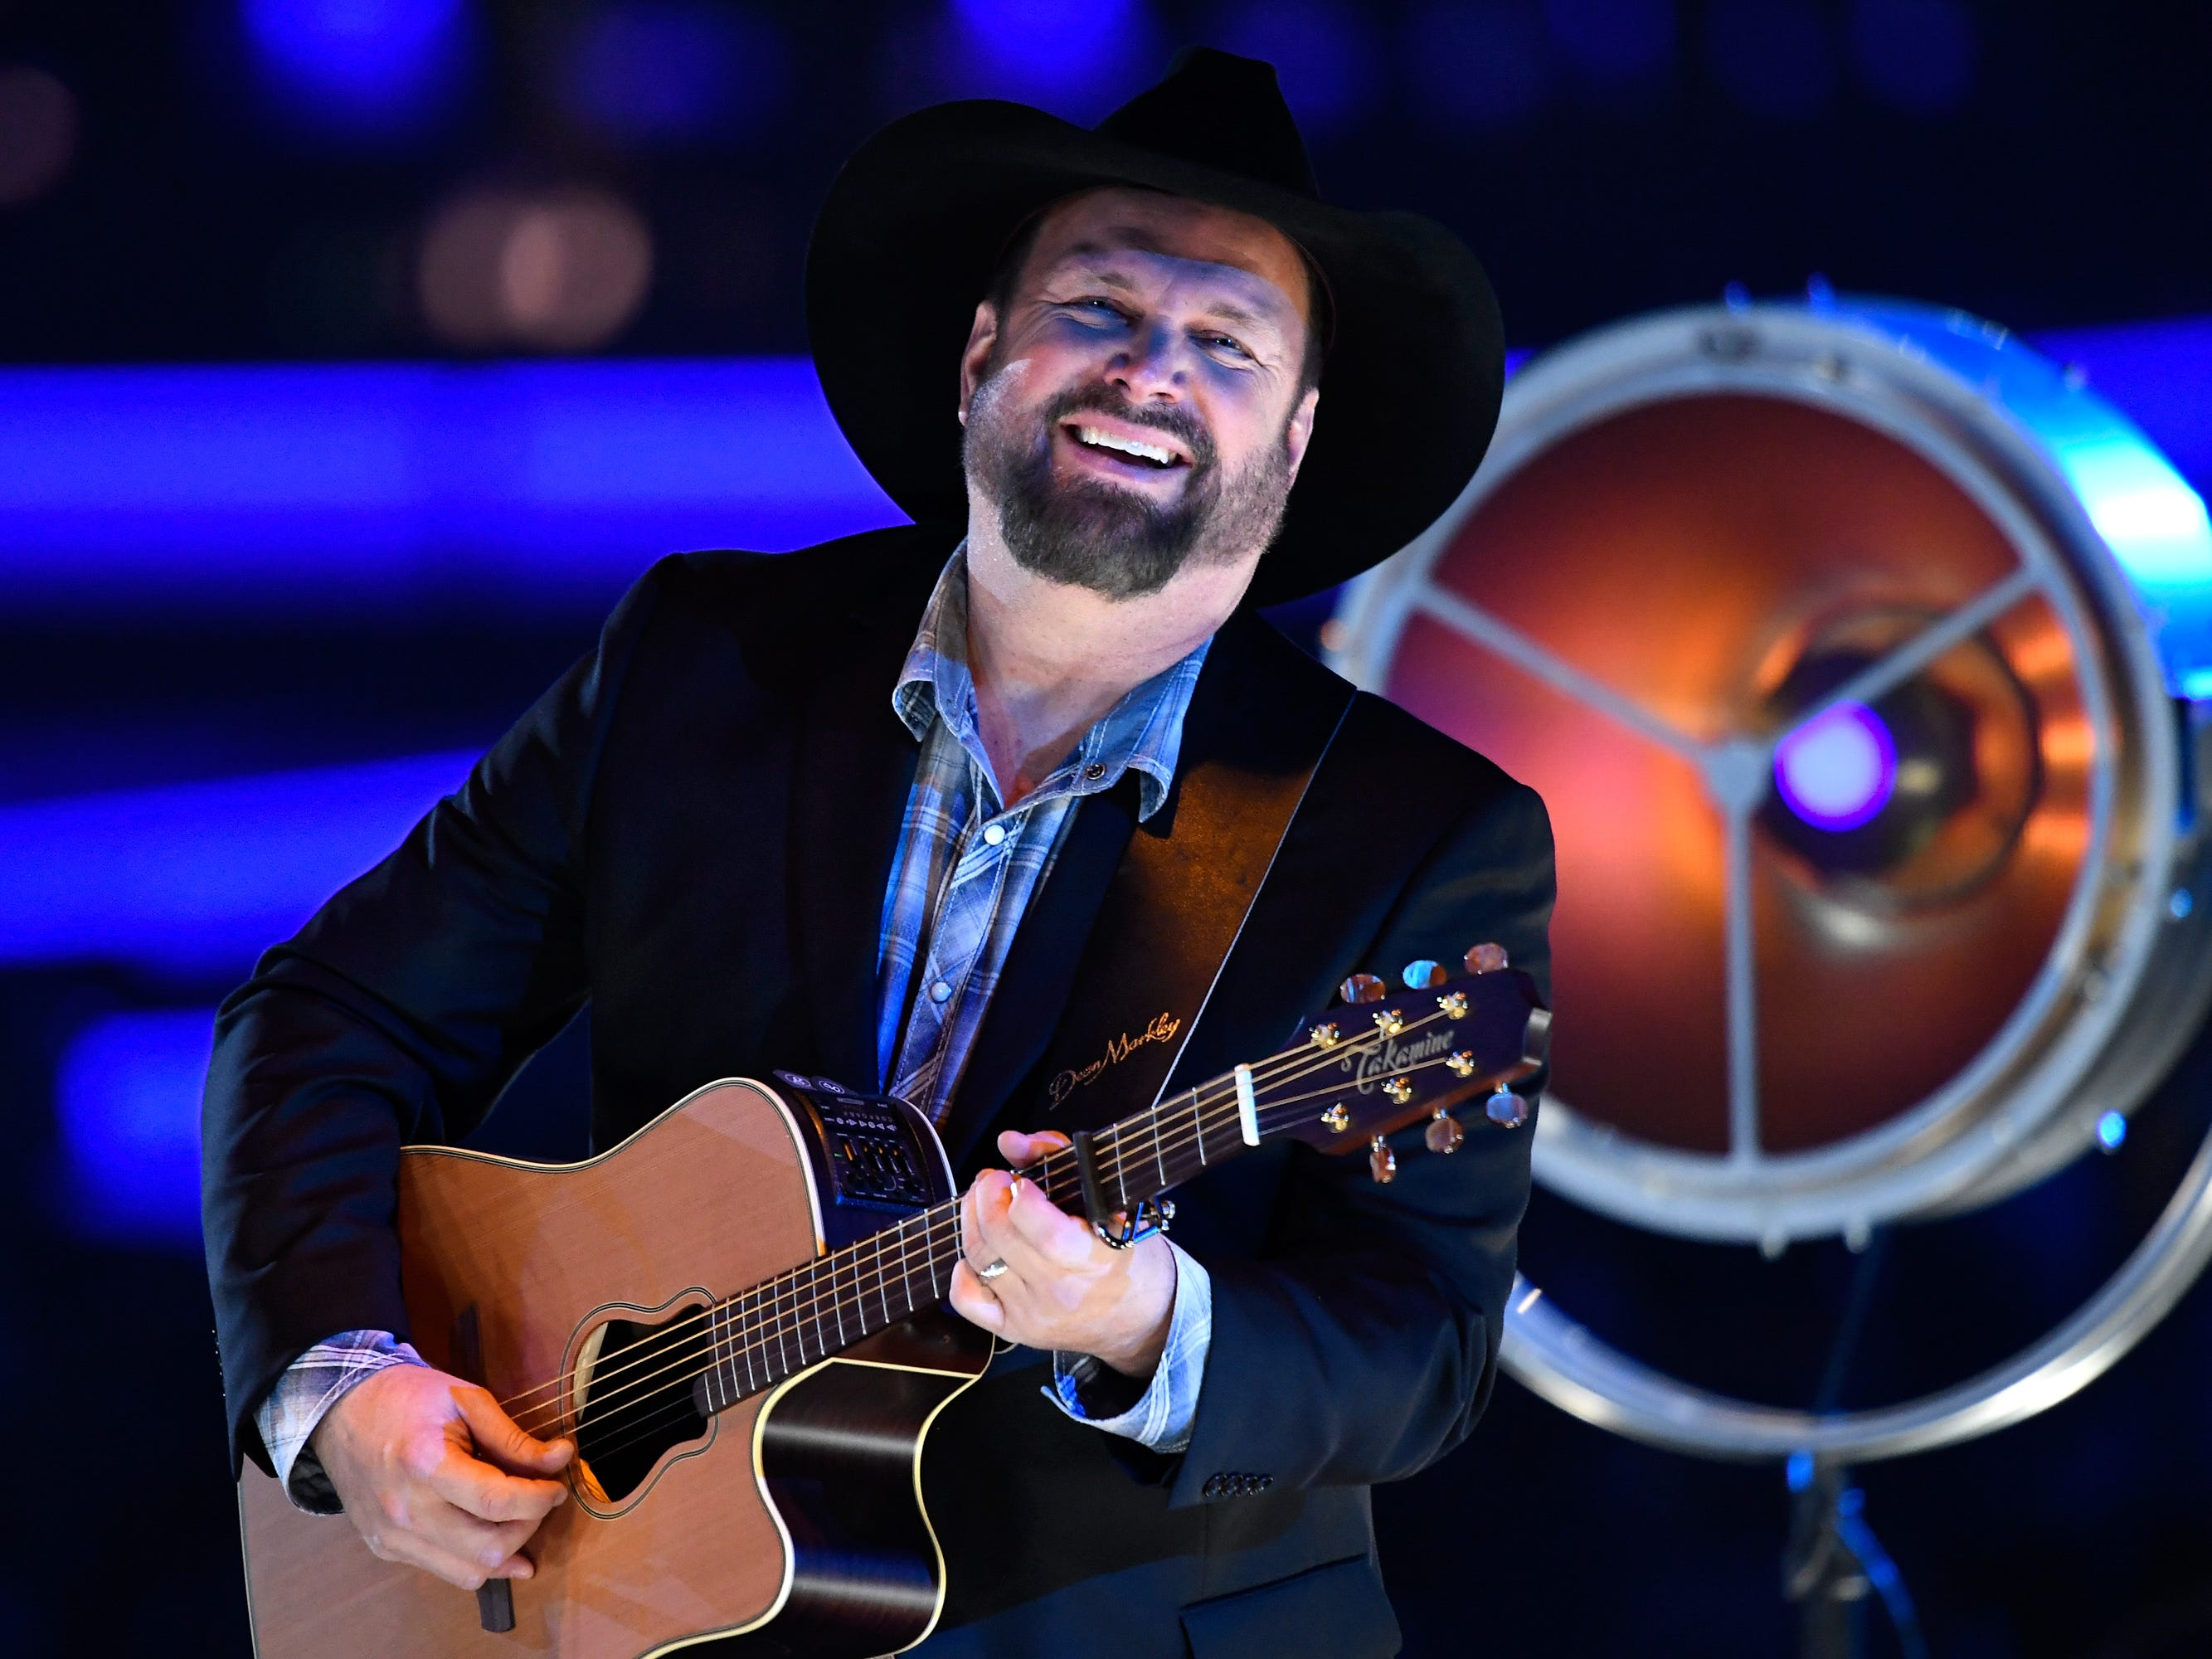 Seeing Garth Brooks stadium tour in Glendale? Here's what you need to know